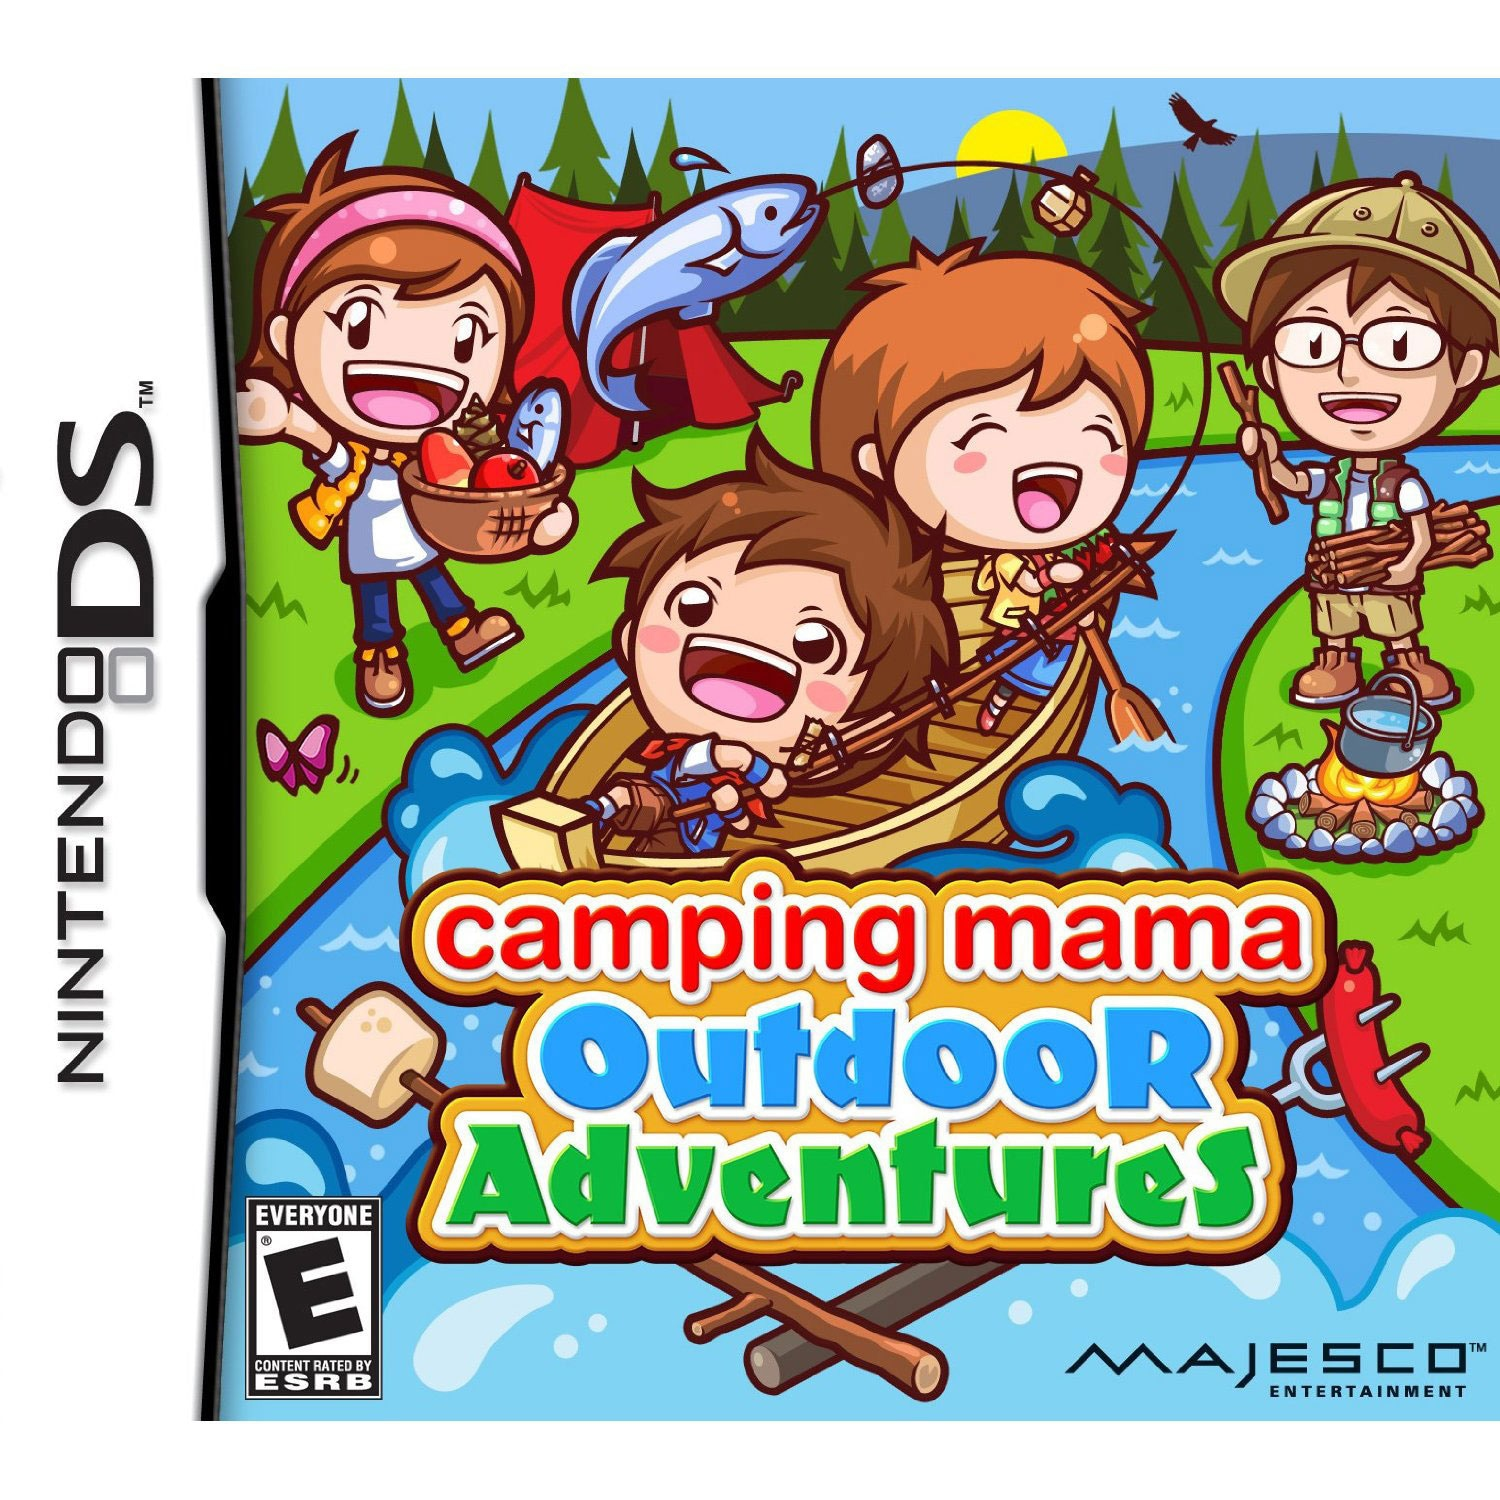 Nintendo DS - Camping Mama Outdoor Adventures - By Majesco